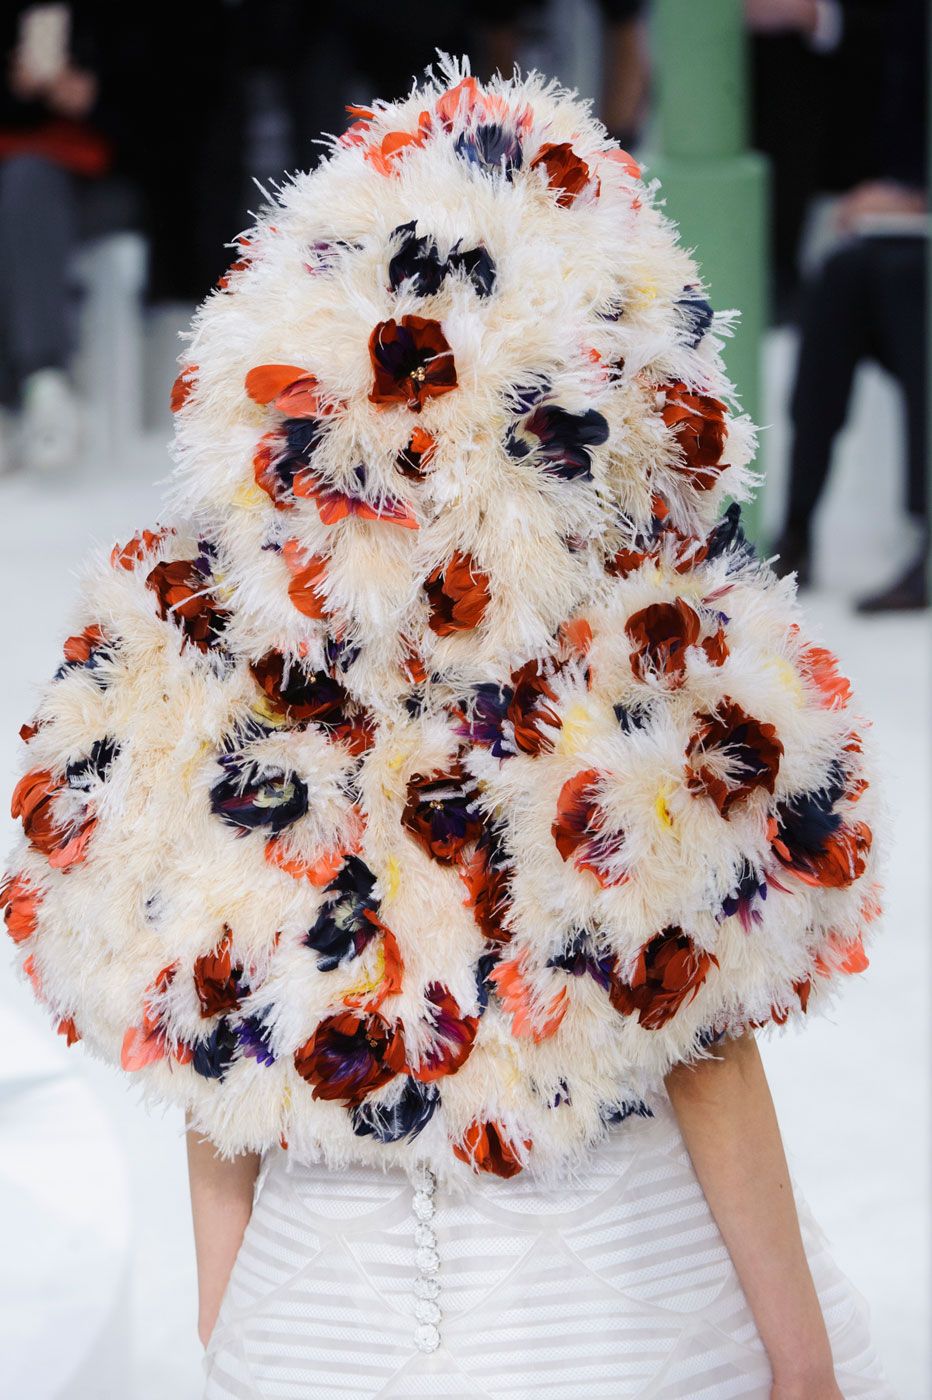 Chanel-fashion-runway-show-close-ups-haute-couture-paris-spring-summer-2015-the-impression-134